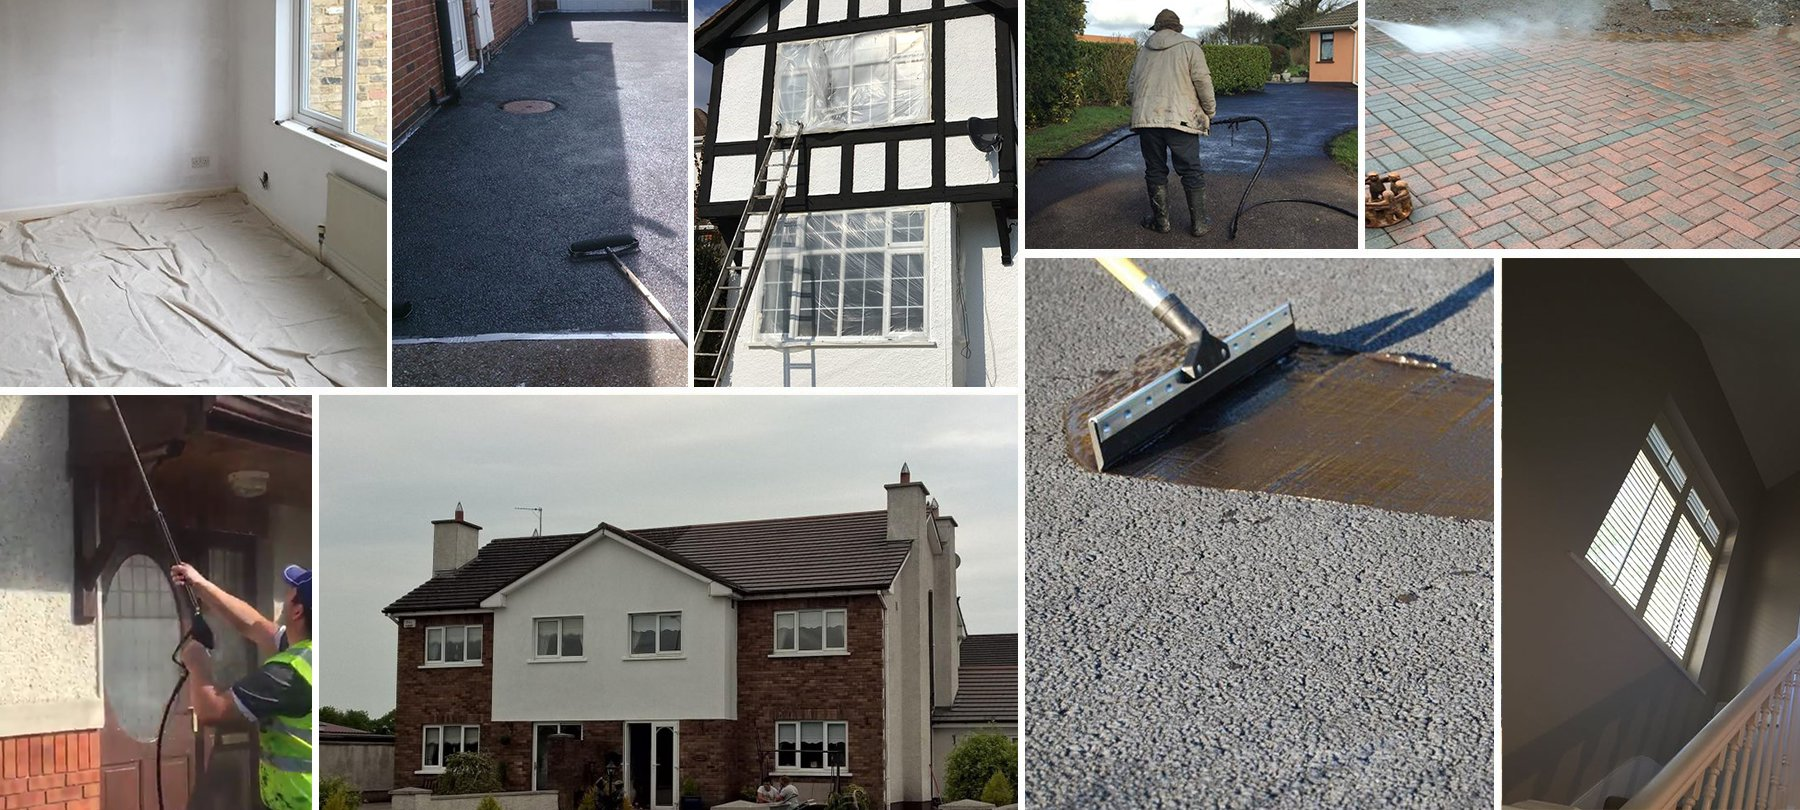 Power washing, sealing Kildare